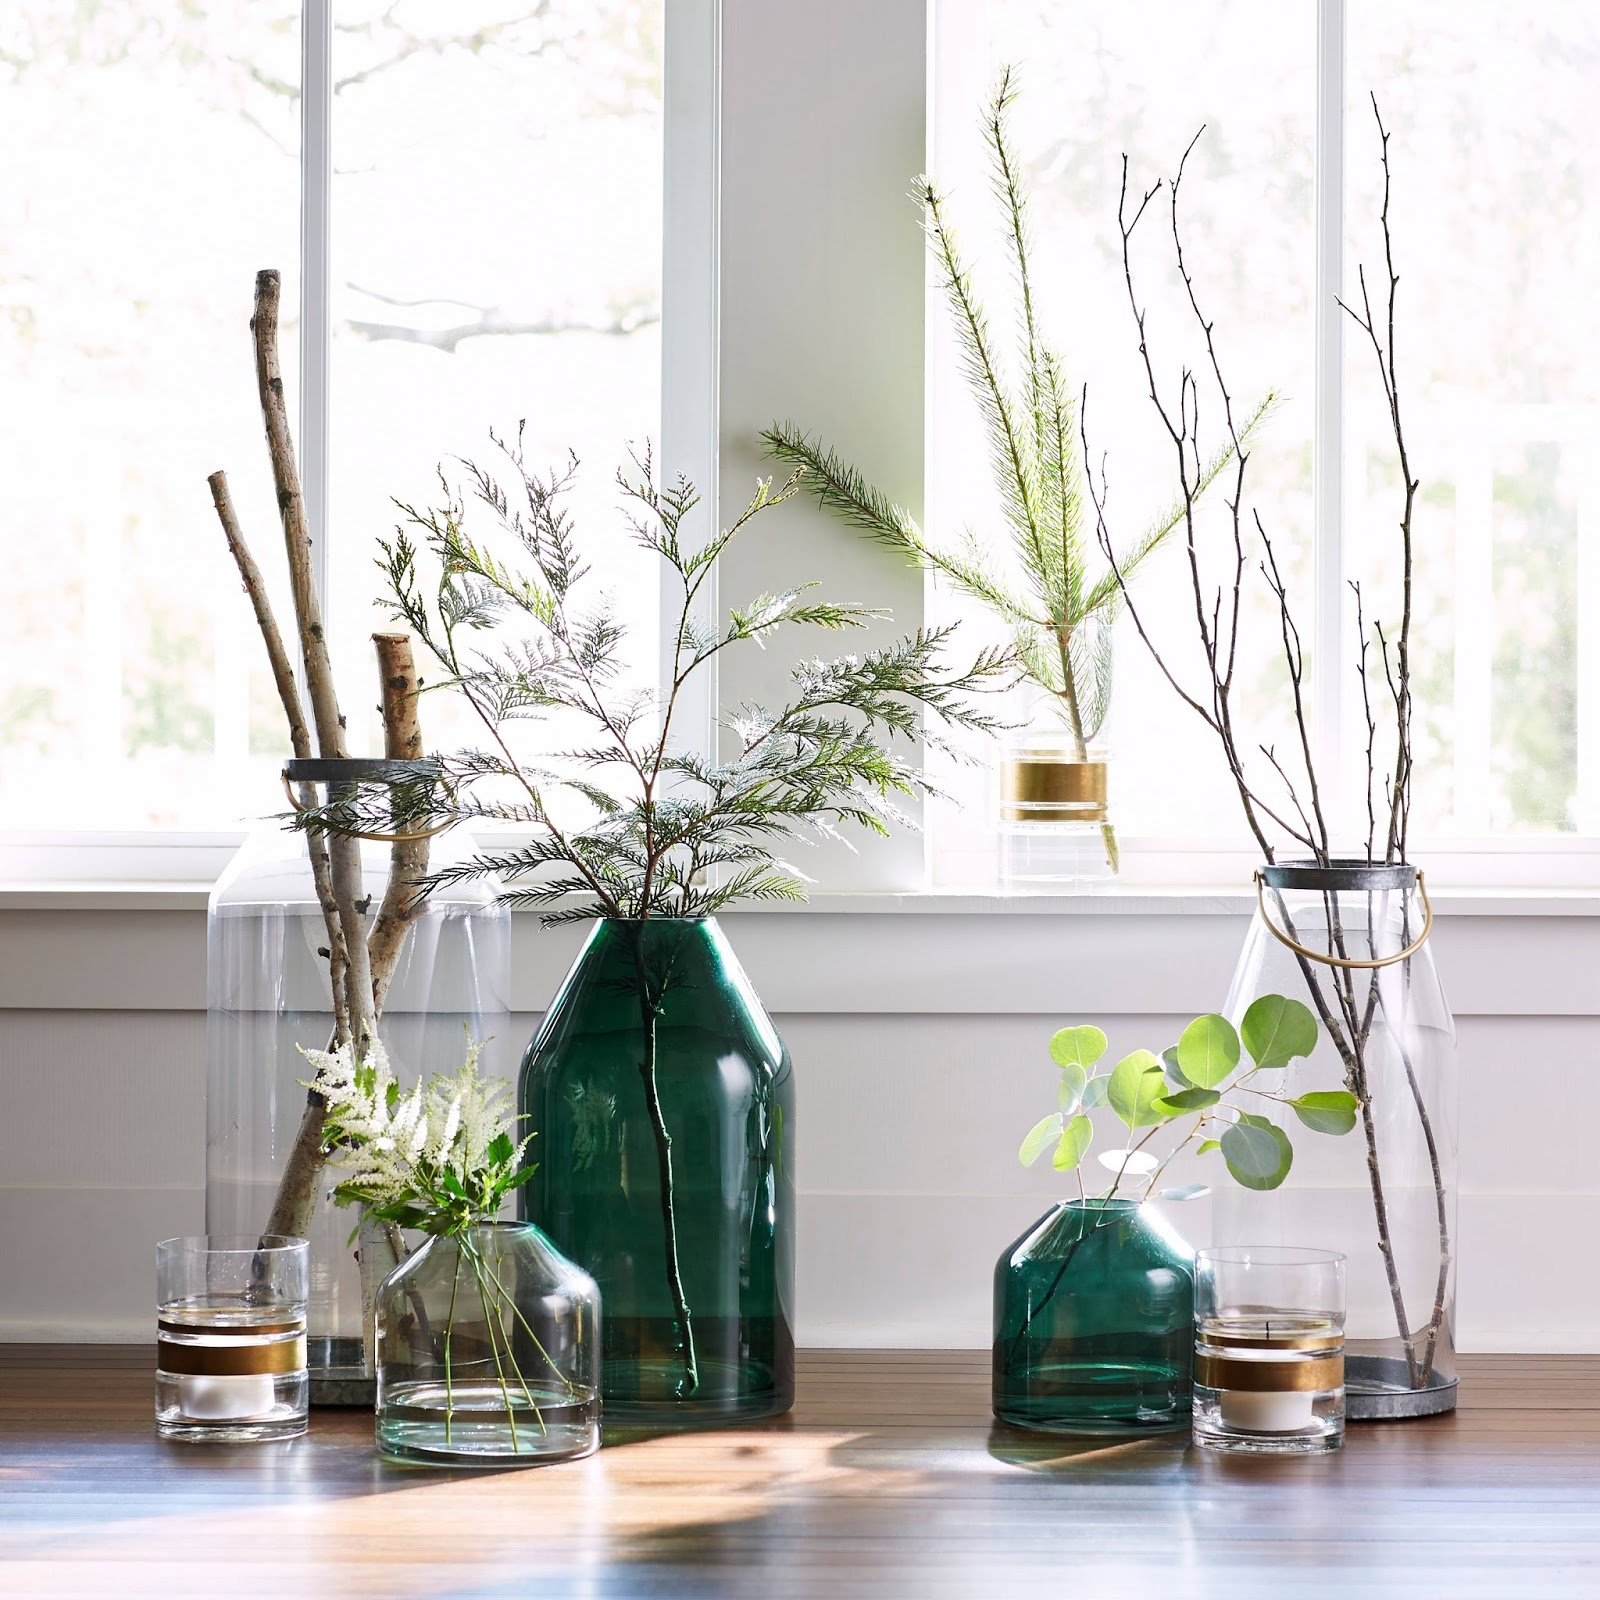 LOVE all of the vases from the new Joanna Gaines collection at Target!